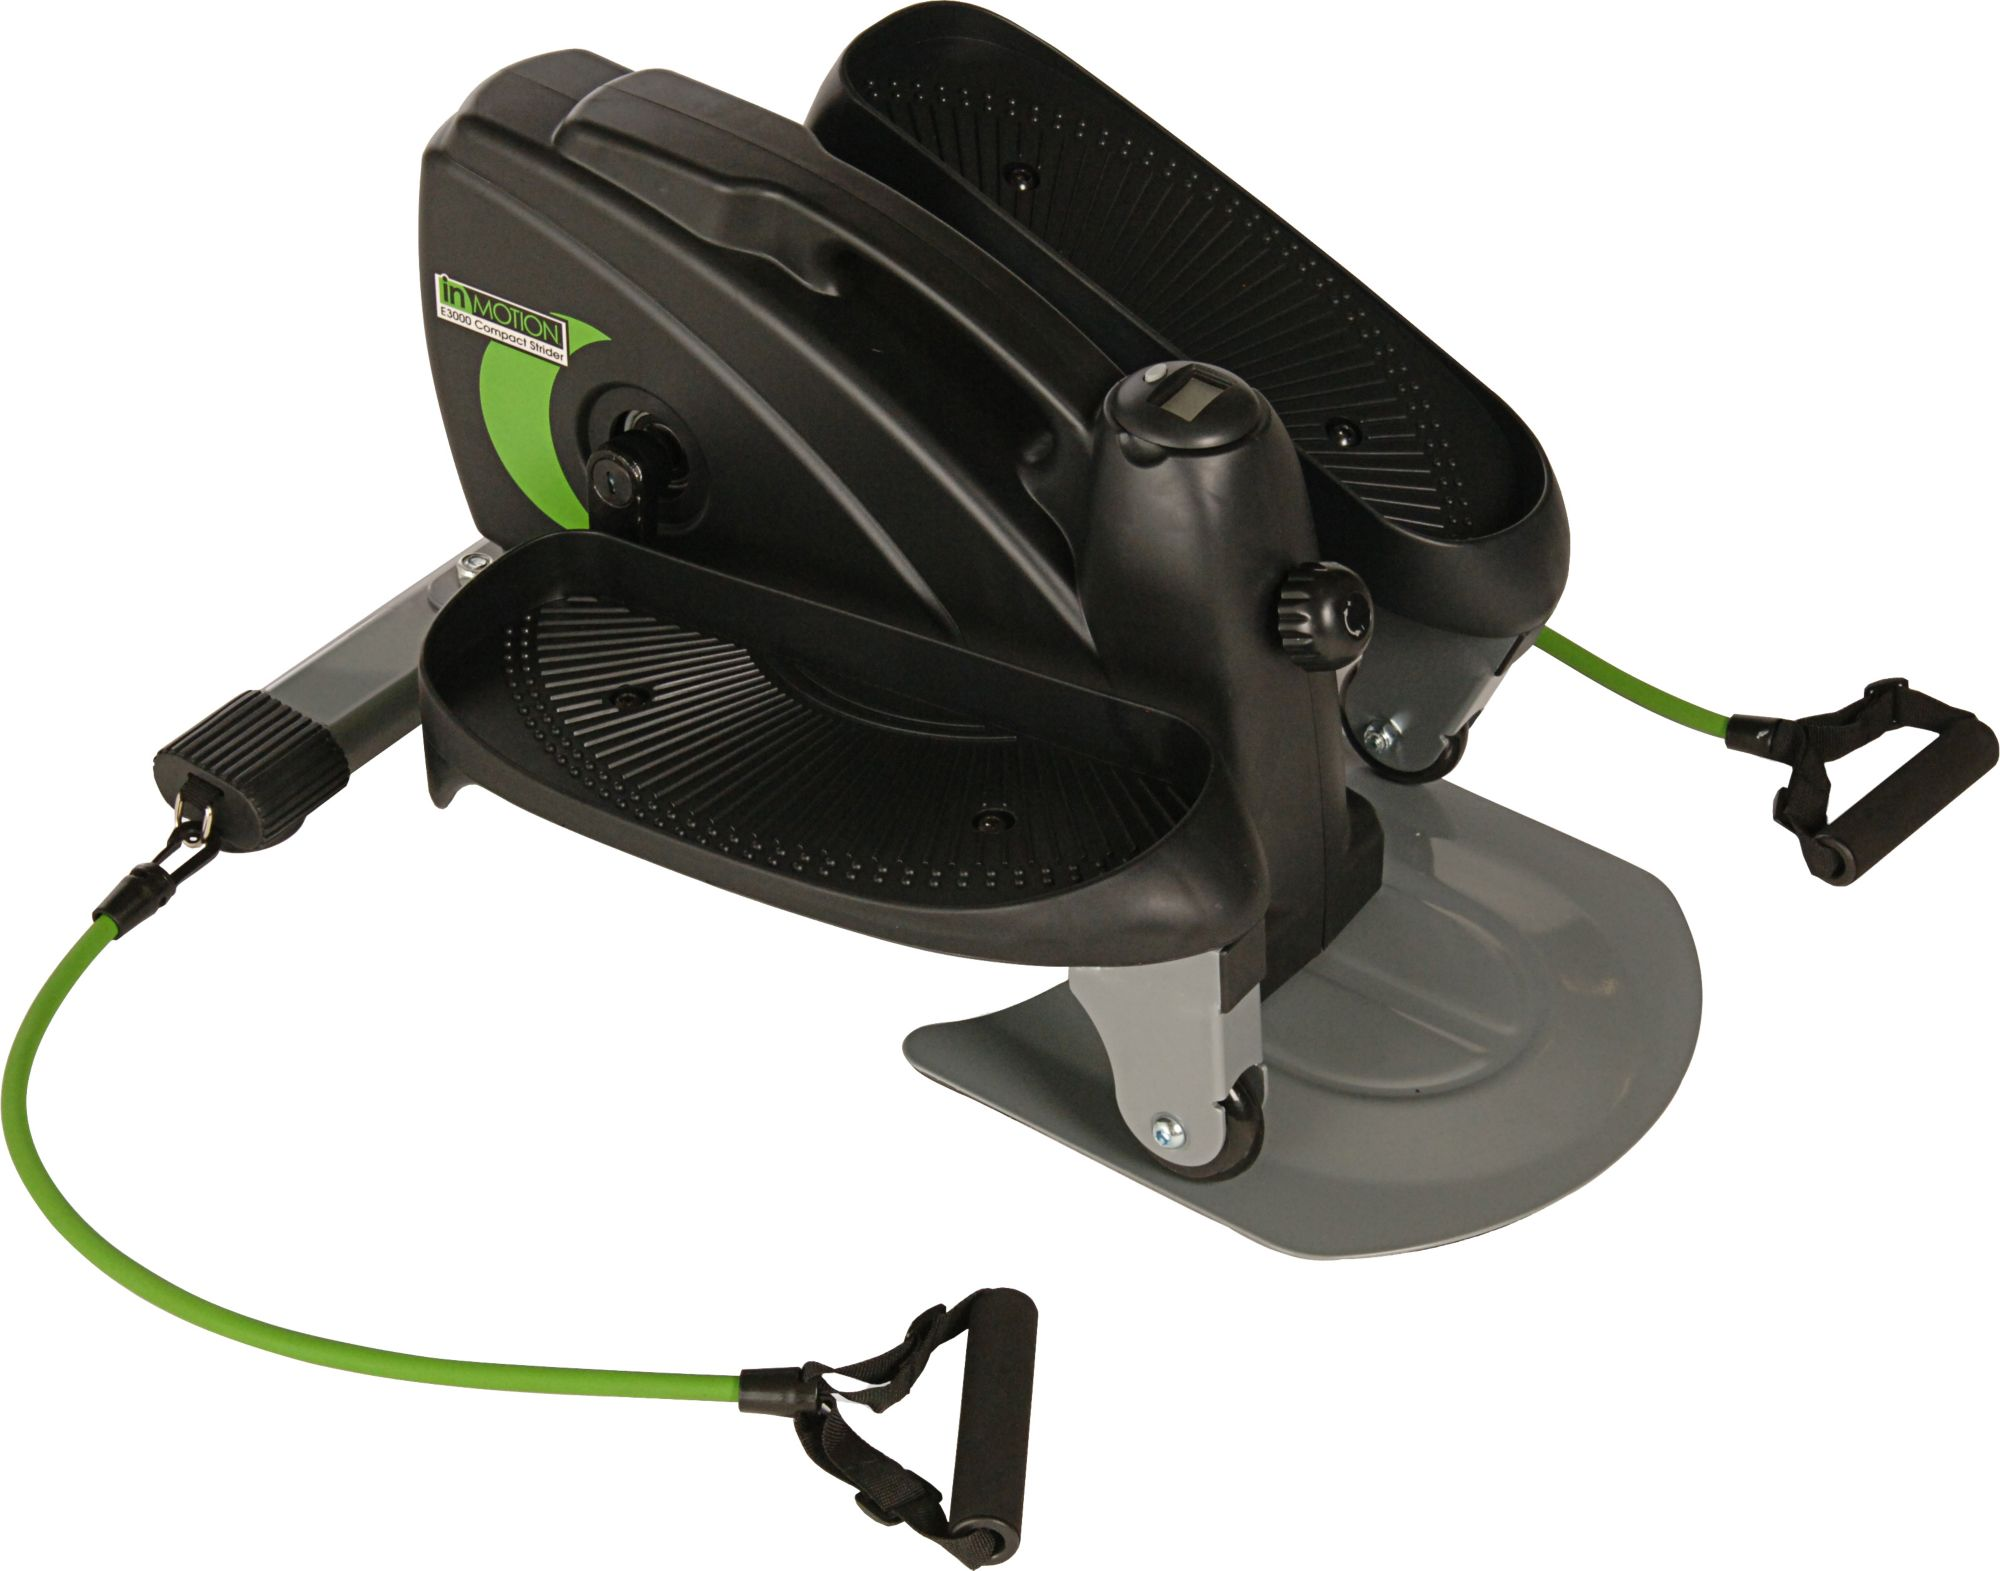 Stamina InMotion Compact Elliptical DICKS Sporting Goods - Small elliptical for home